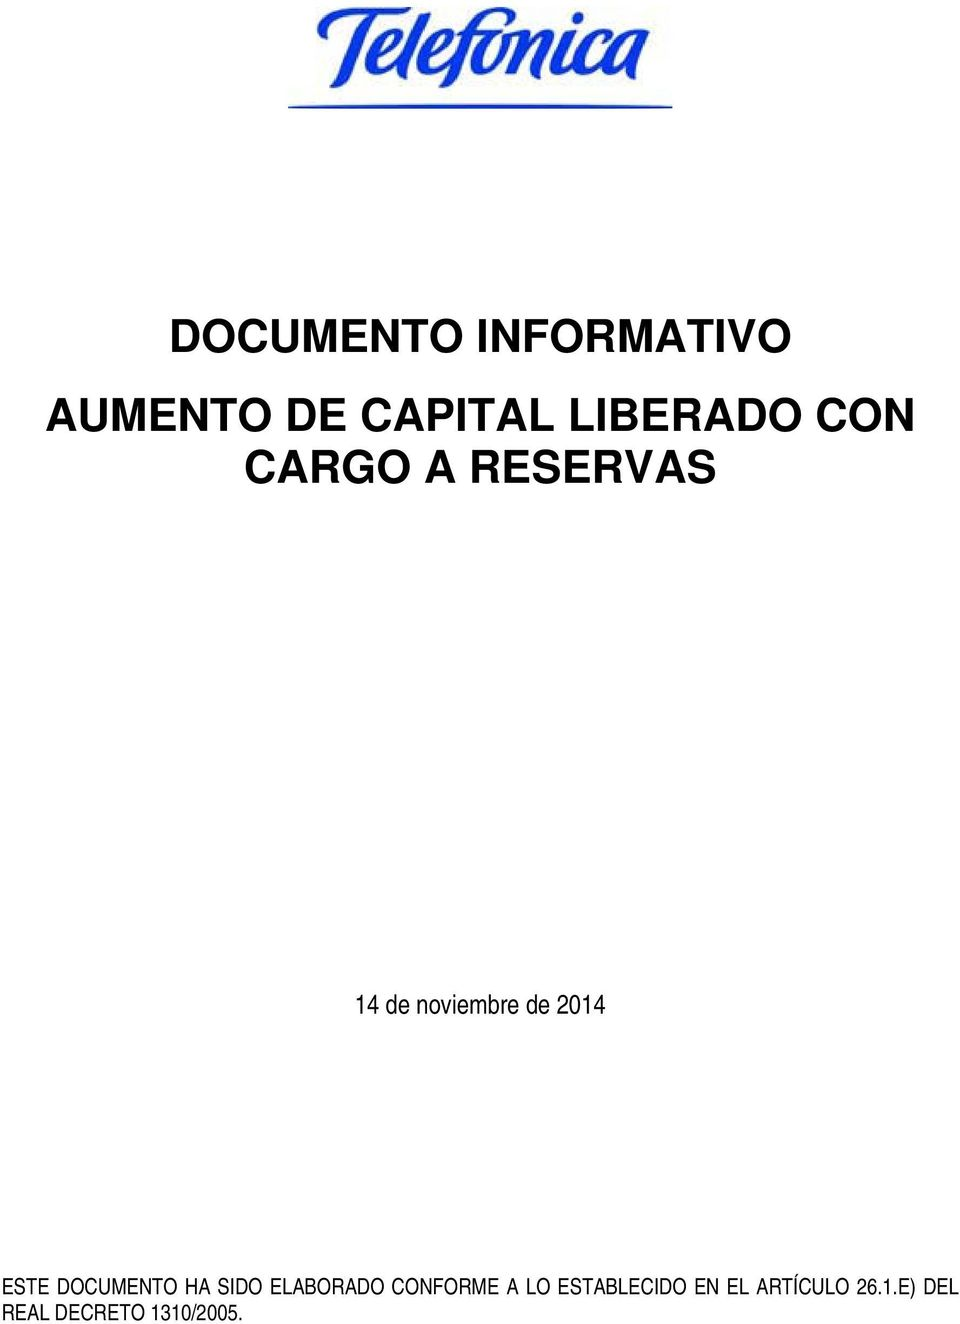 DOCUMENTO HA SIDO ELABORADO CONFORME A LO